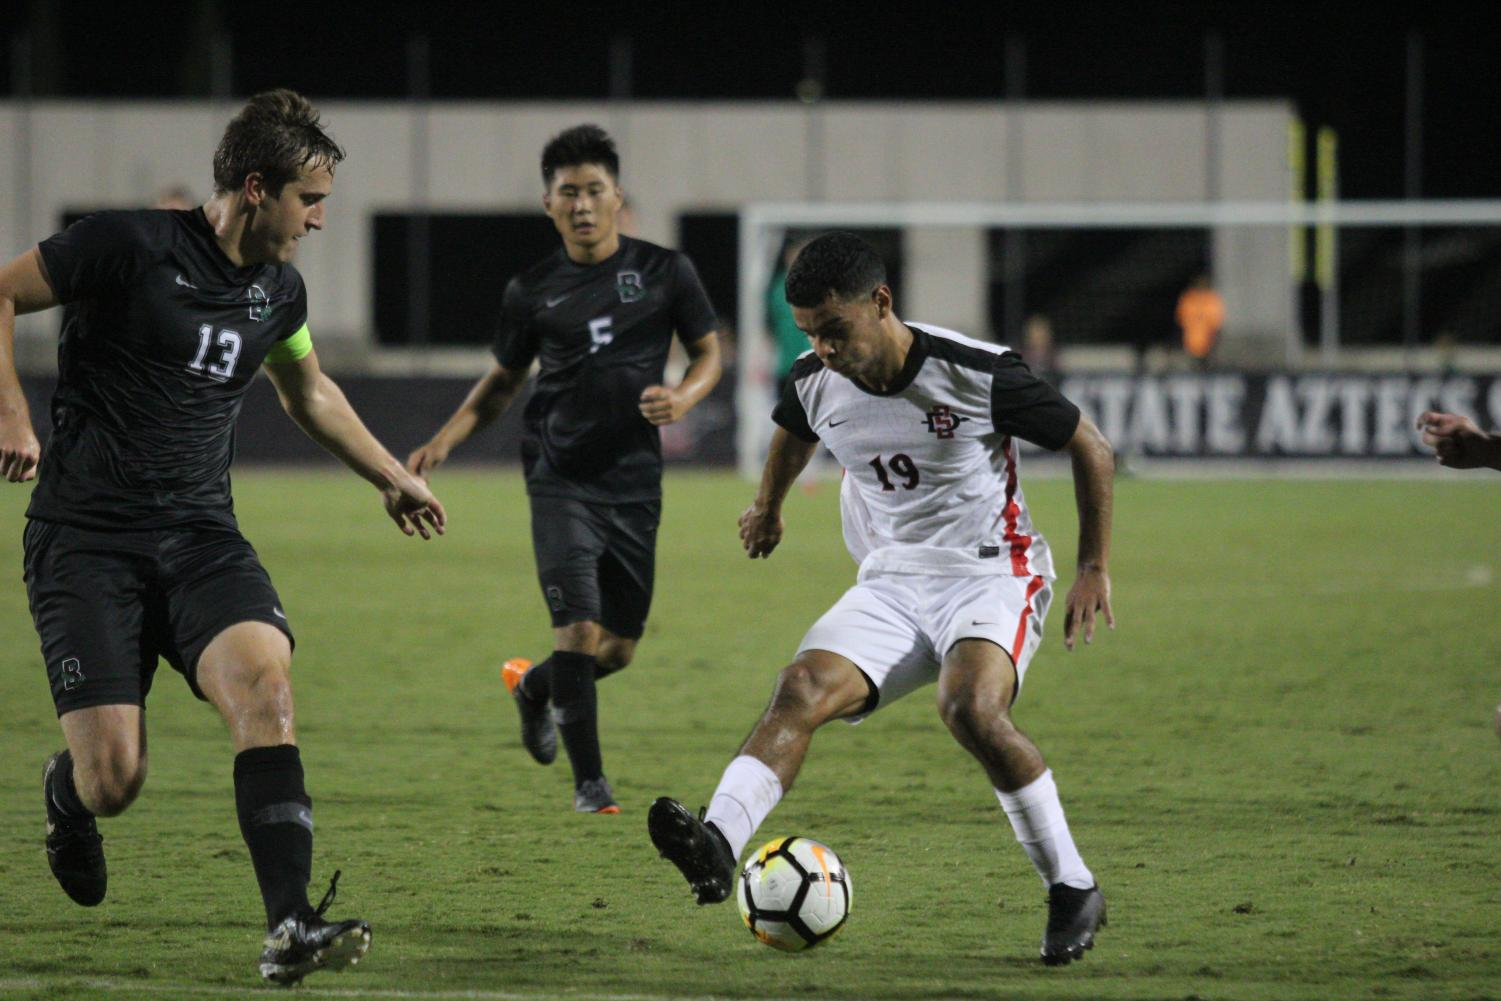 Senior forward Damian German dribbles the ball during the Aztecs 2-0 victory over Brown University on Sept. 14 at the SDSU Sports Deck. German had two goals in the game.